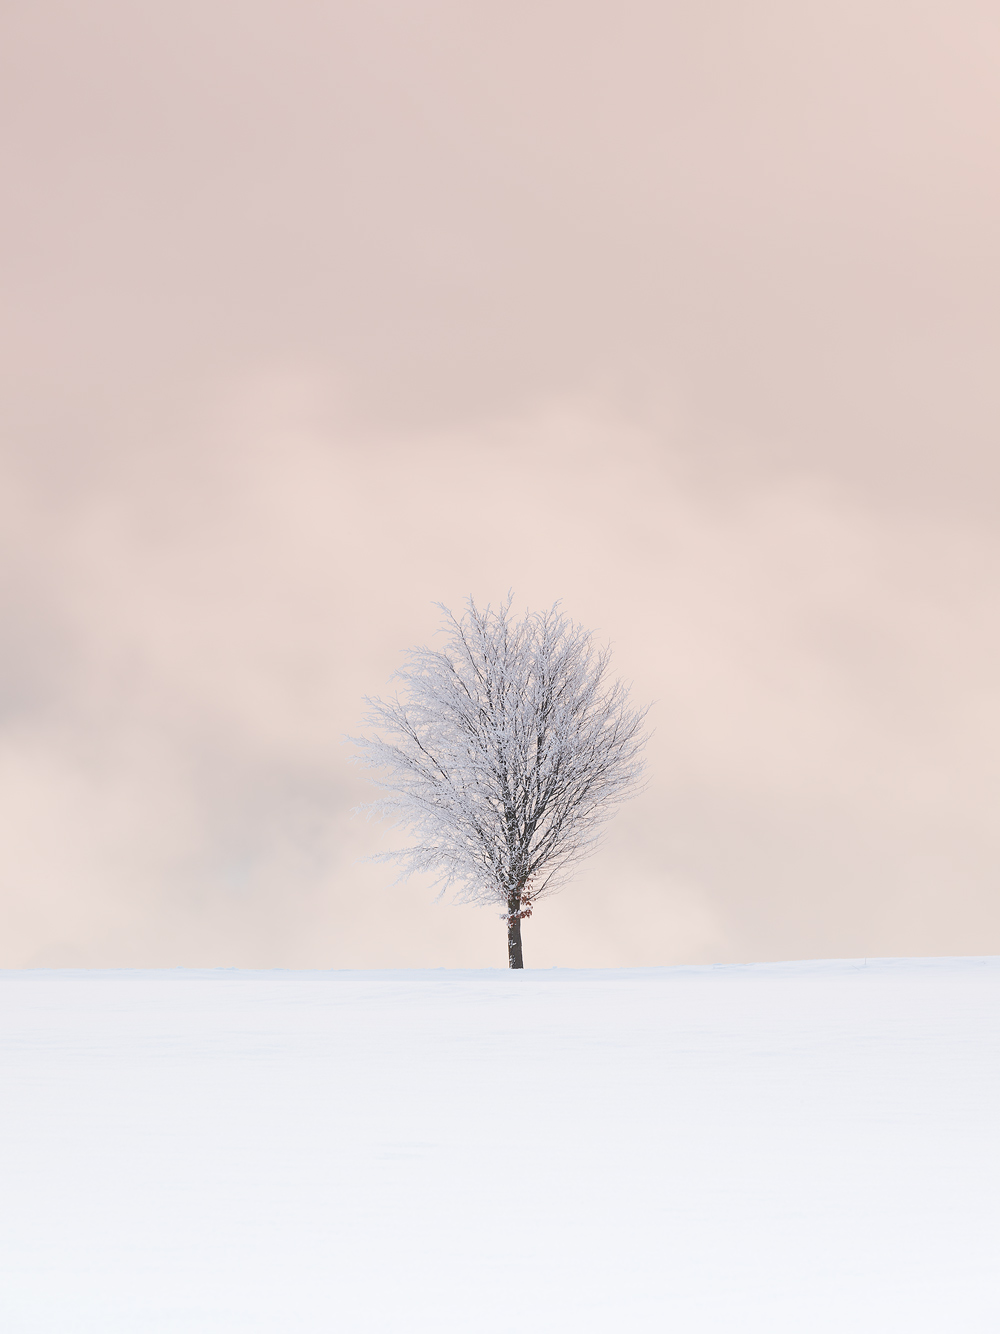 Lone Tree, Ore Mountains, Germany by Nils Leonhardt